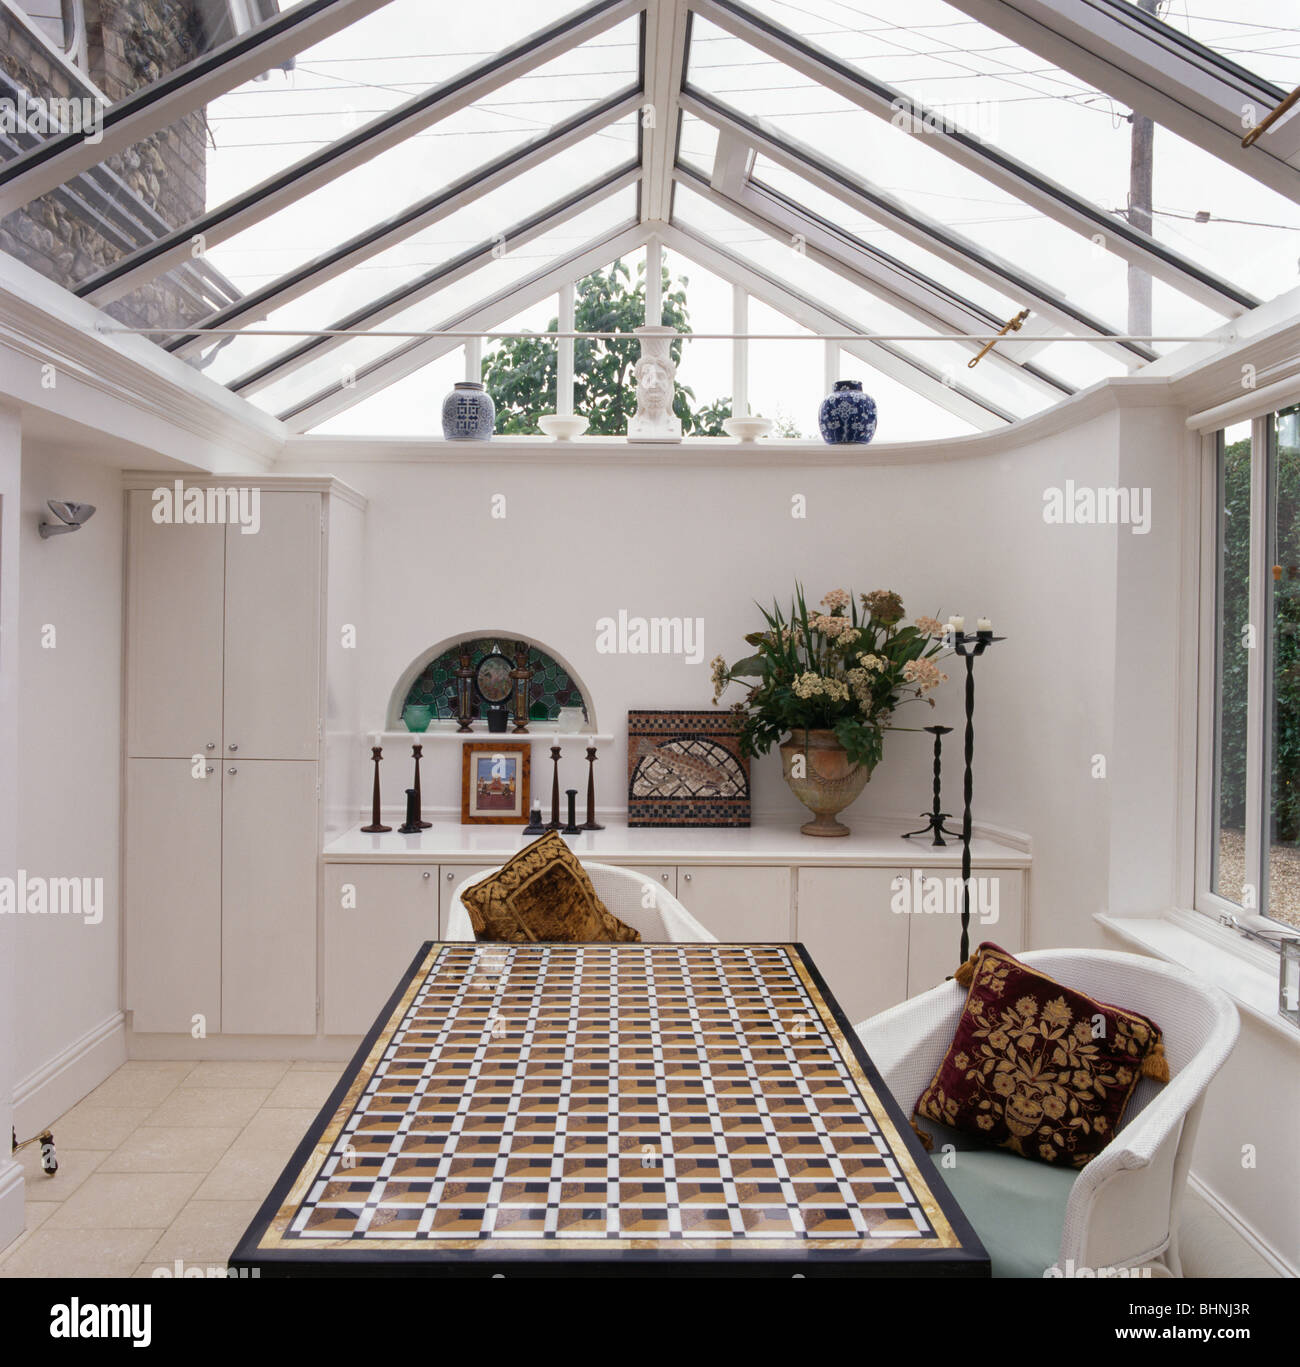 Table With Patterned Top In Dining Room Extension Glass Roof